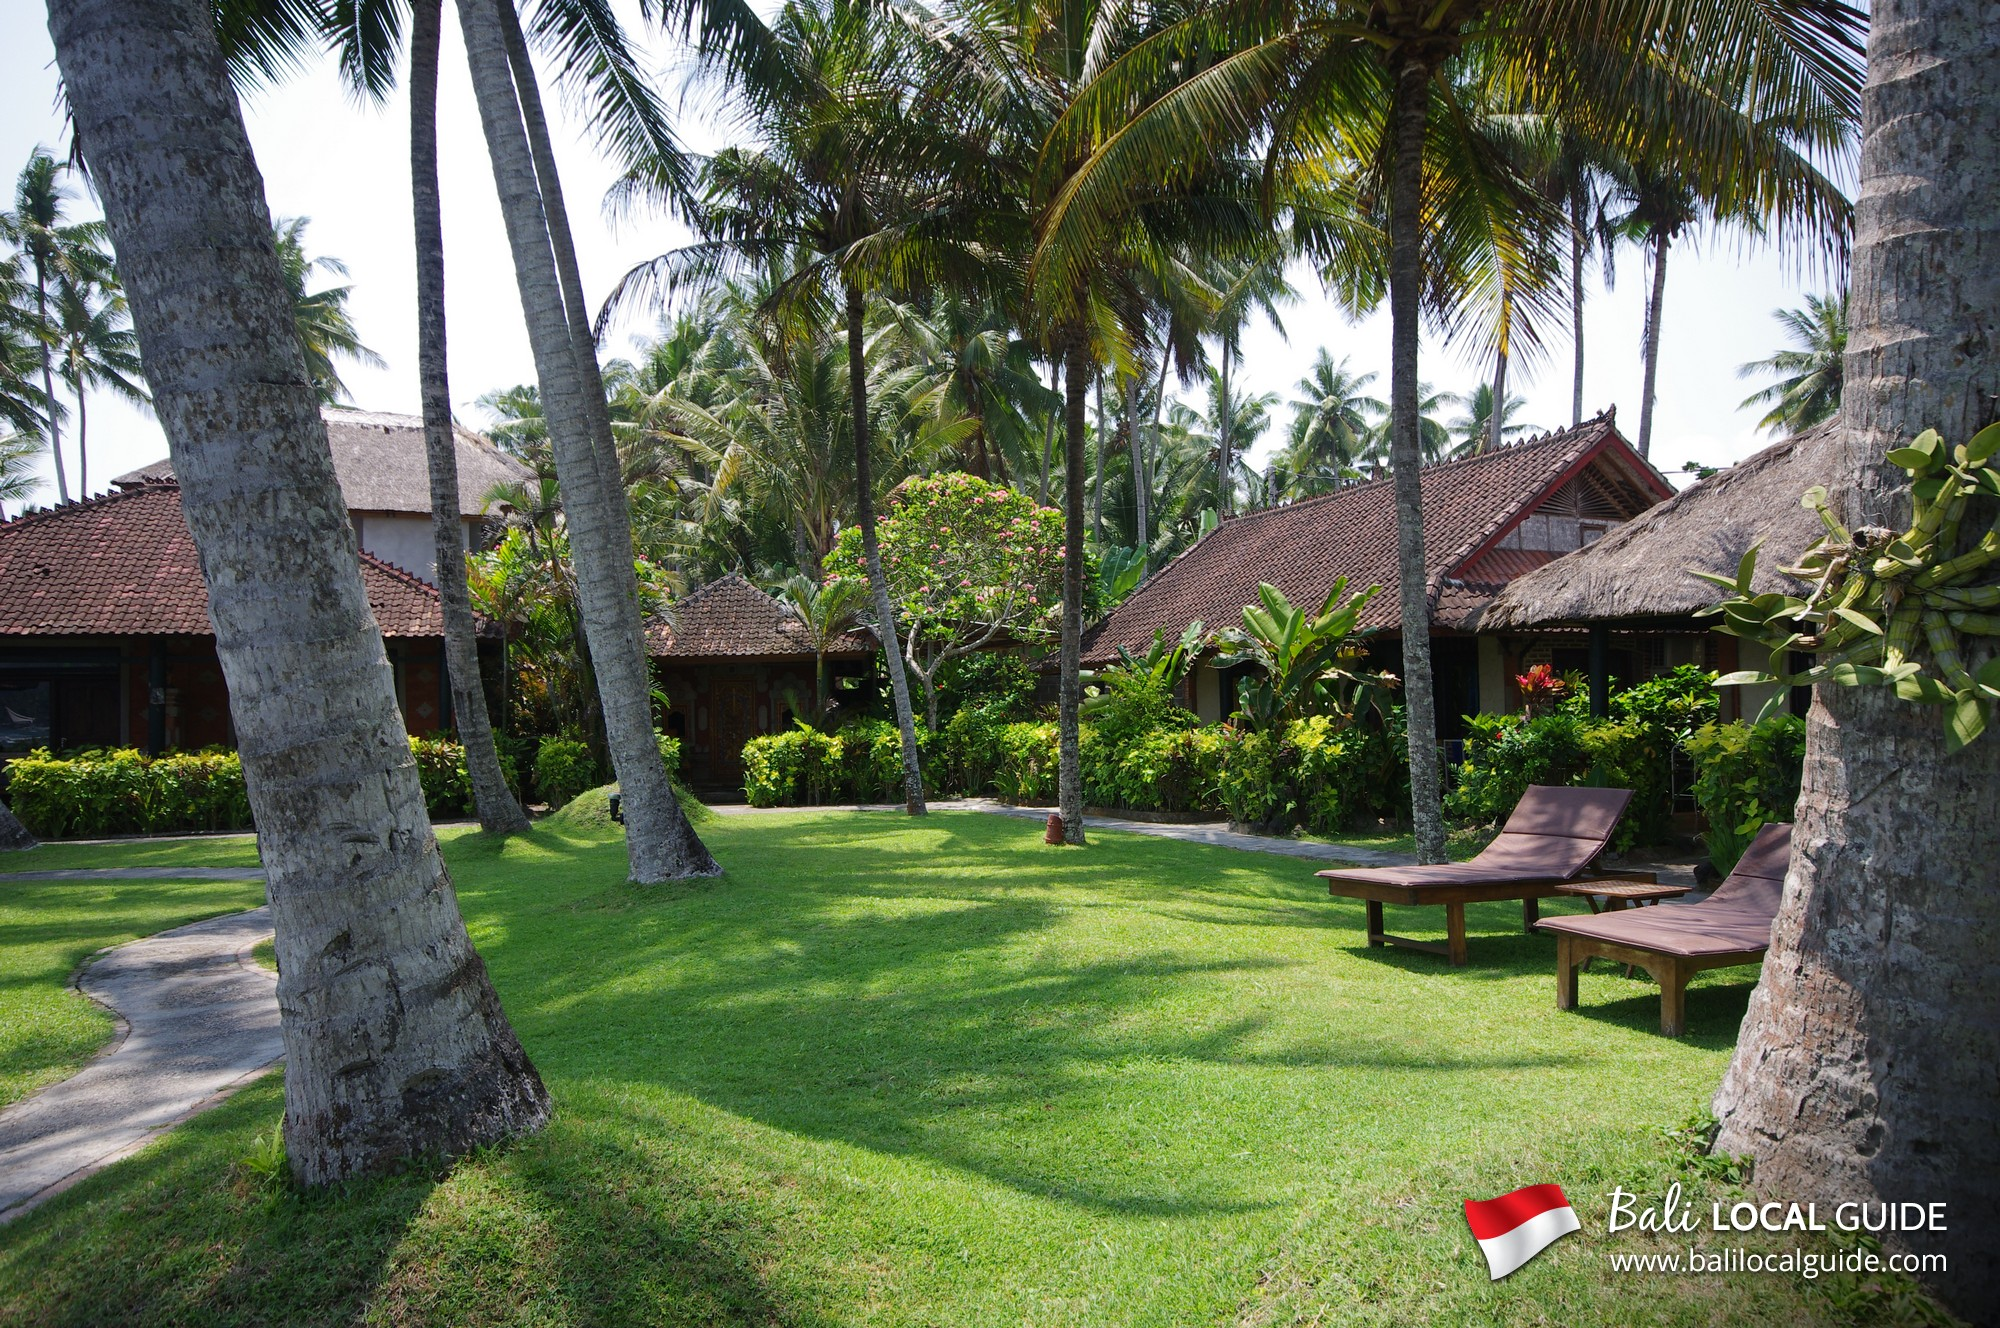 Amarta Beach Cottages : Review & Photos | Bali Local Guide